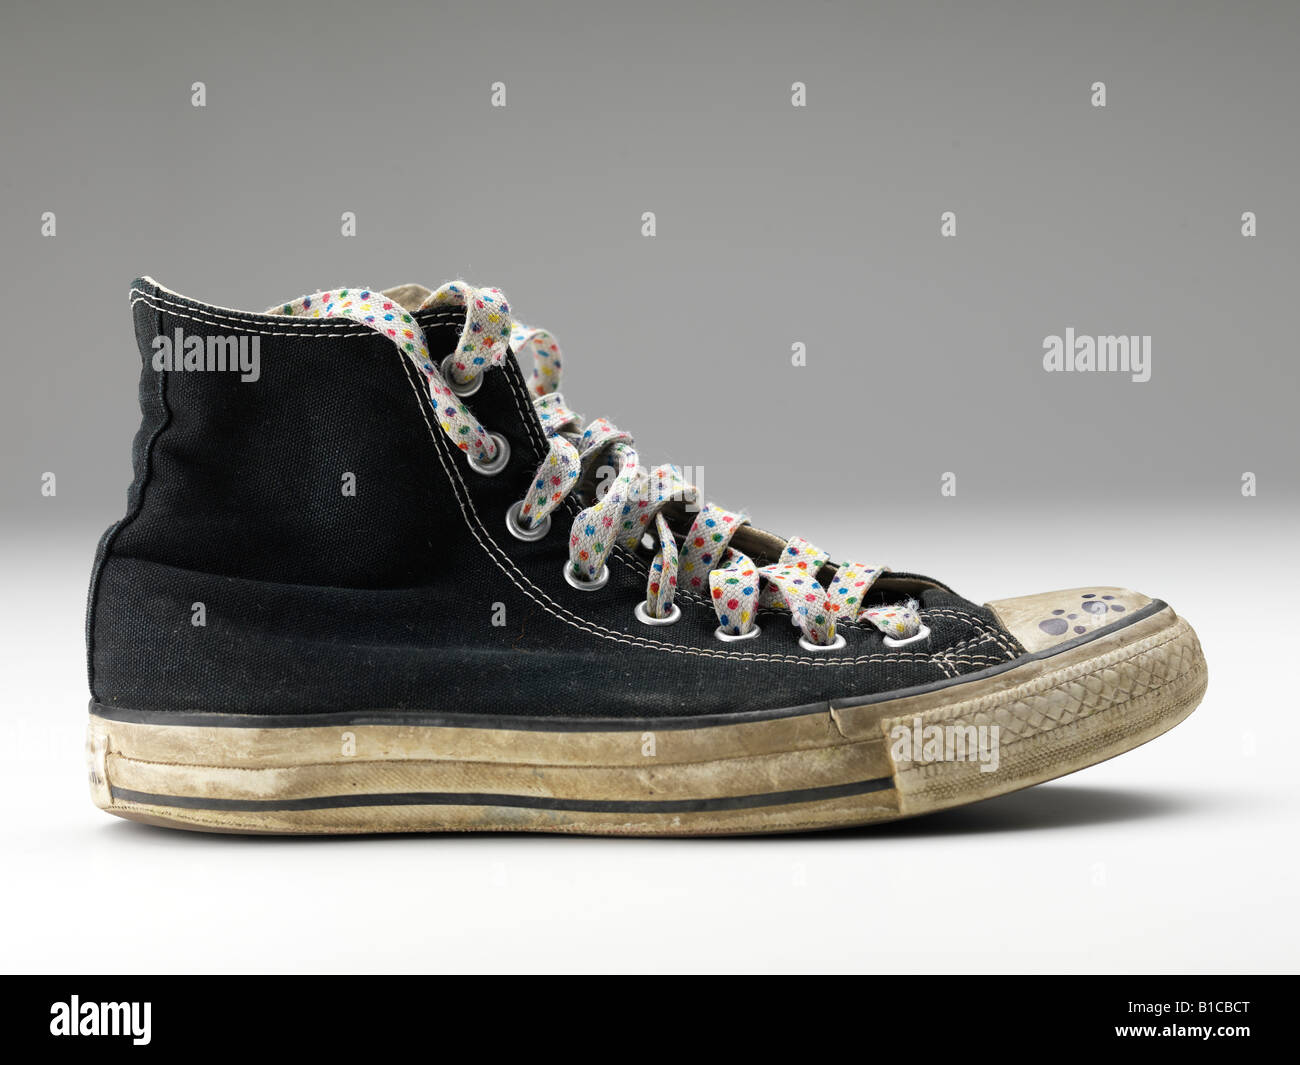 converse all star high latex back basketball dirty lace